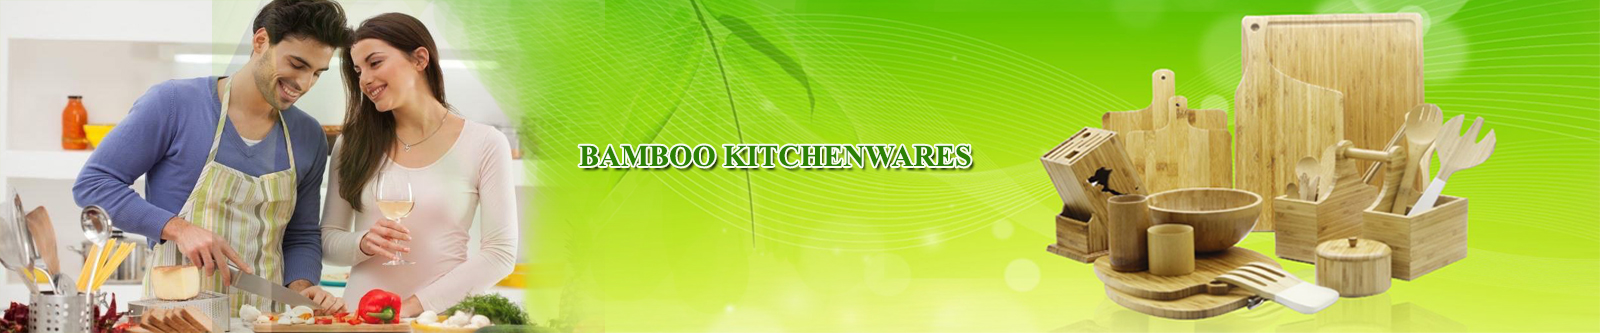 Bamboo Kitchen Tools